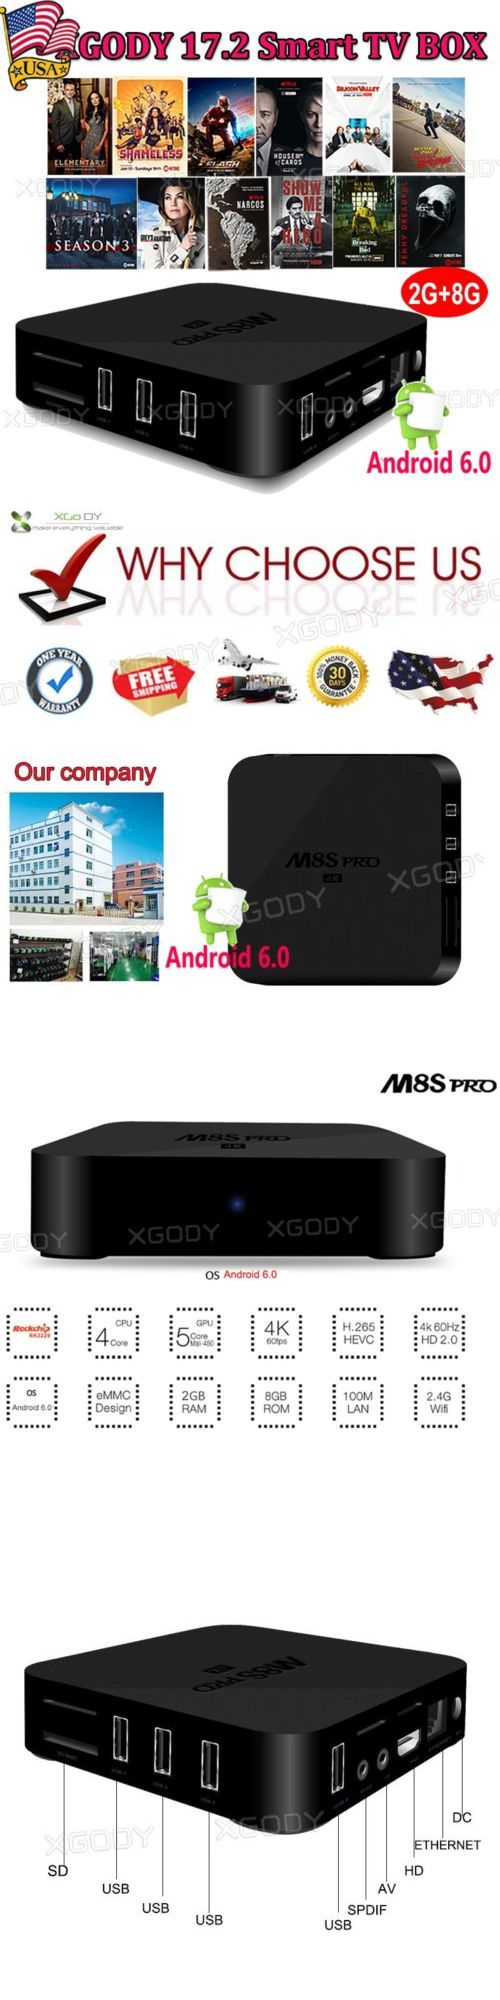 Internet and Media Streamers: Xgody Latest 17.2 Quad Core Android6.0 Tv Box M8s Pro Hdmi Media 4K Movies Wifi -> BUY IT NOW ONLY: $35.97 on eBay!